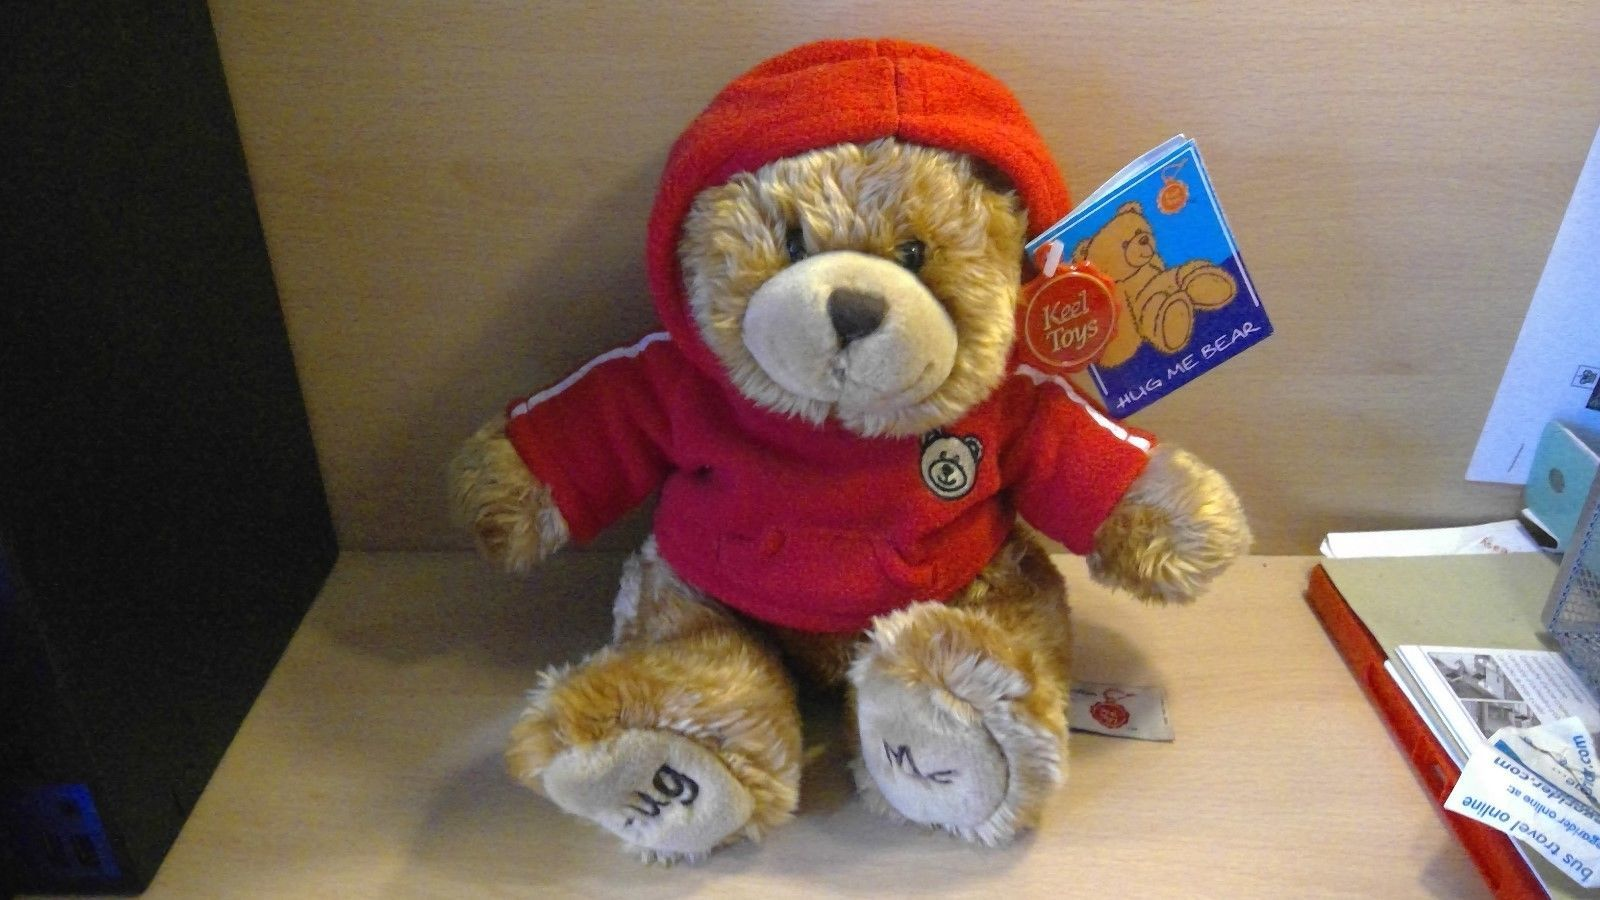 Keel toys hug me #teddy bear #simply soft #collection ,  View more on the LINK: http://www.zeppy.io/product/gb/2/192056838652/